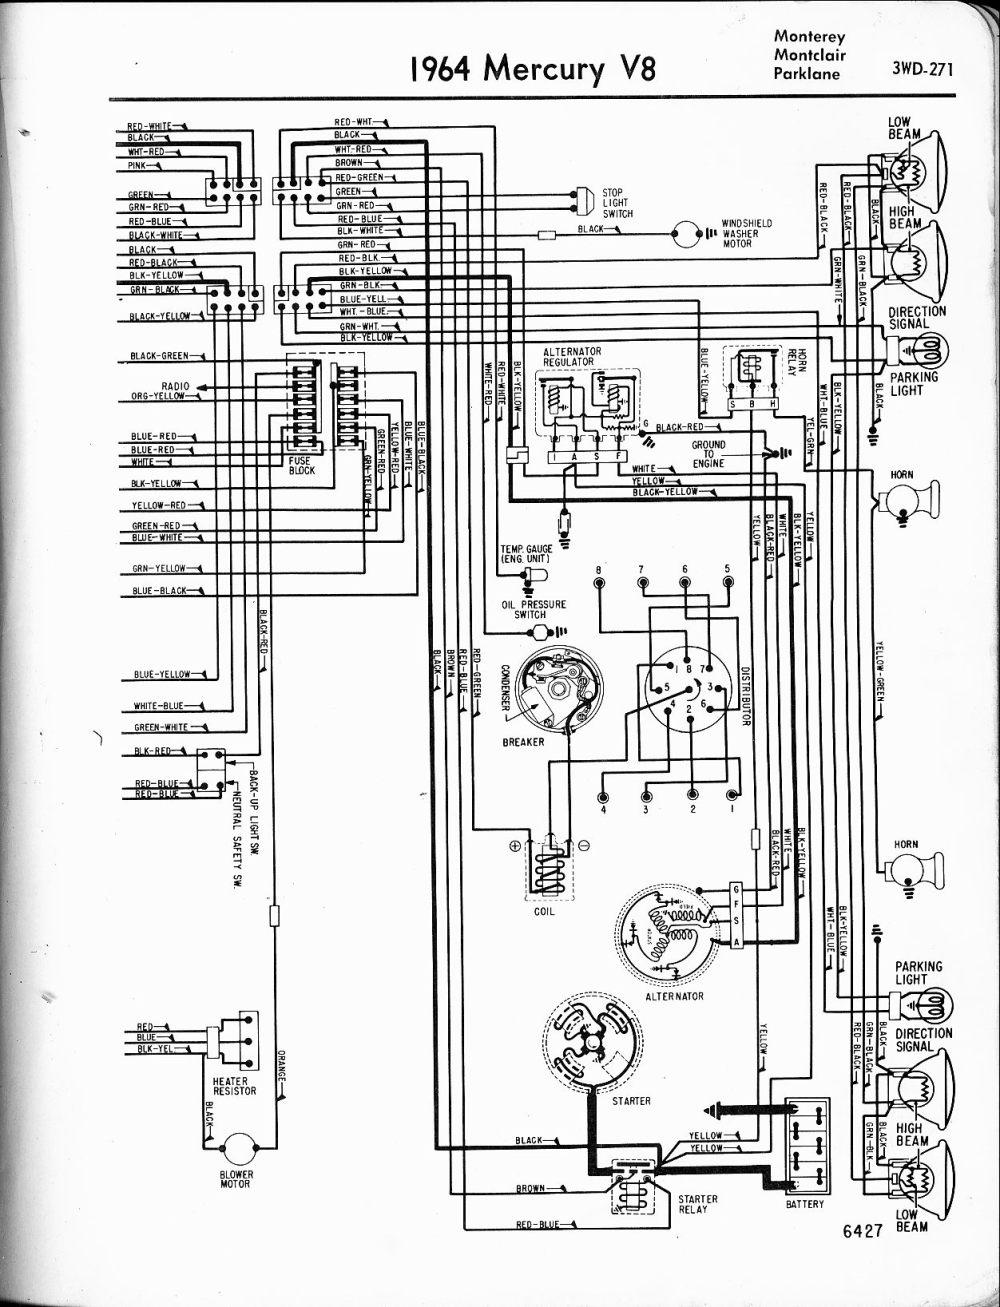 medium resolution of mercury wiring diagram wiring diagram centremercury wiring diagrams the old car manual project1964 v8 monterey